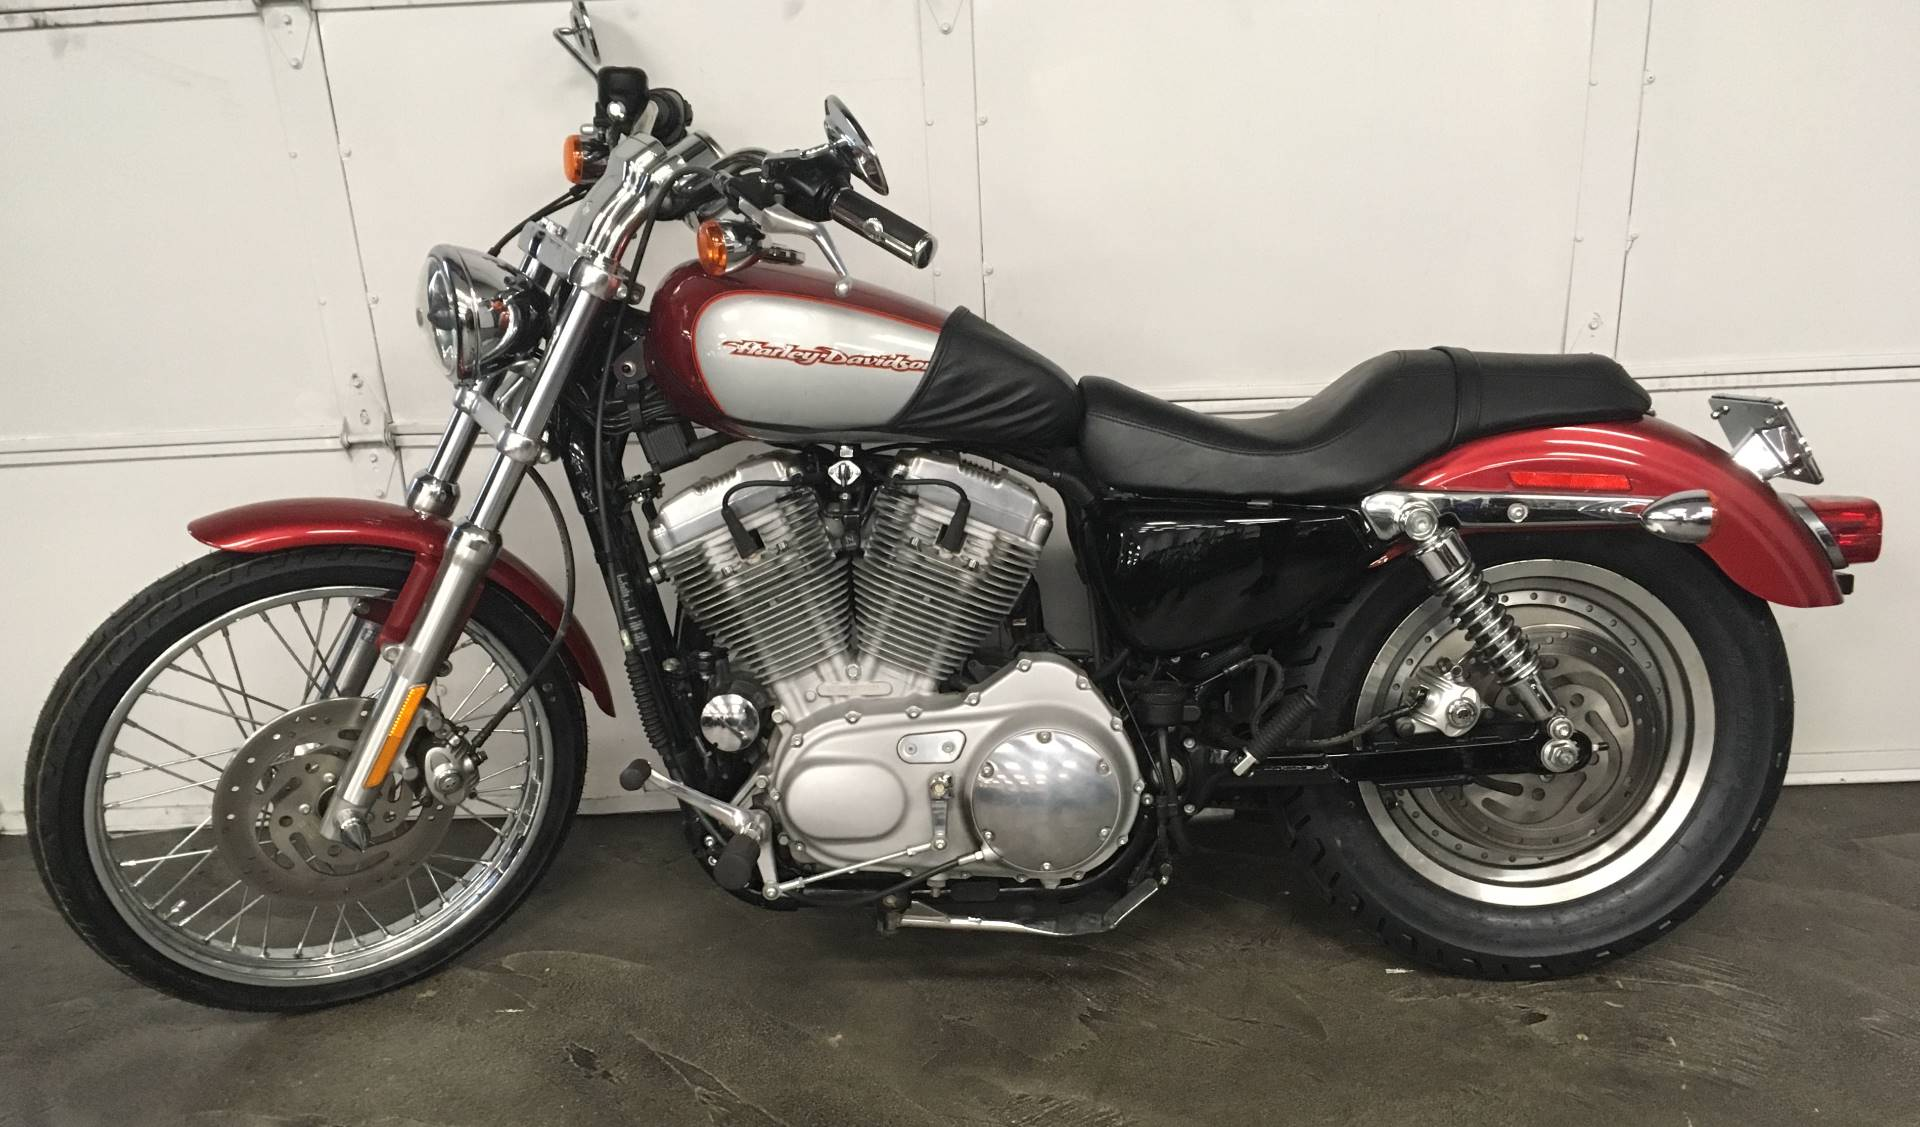 2005 Harley-Davidson Sportster® XL 883C in Mahwah, New Jersey